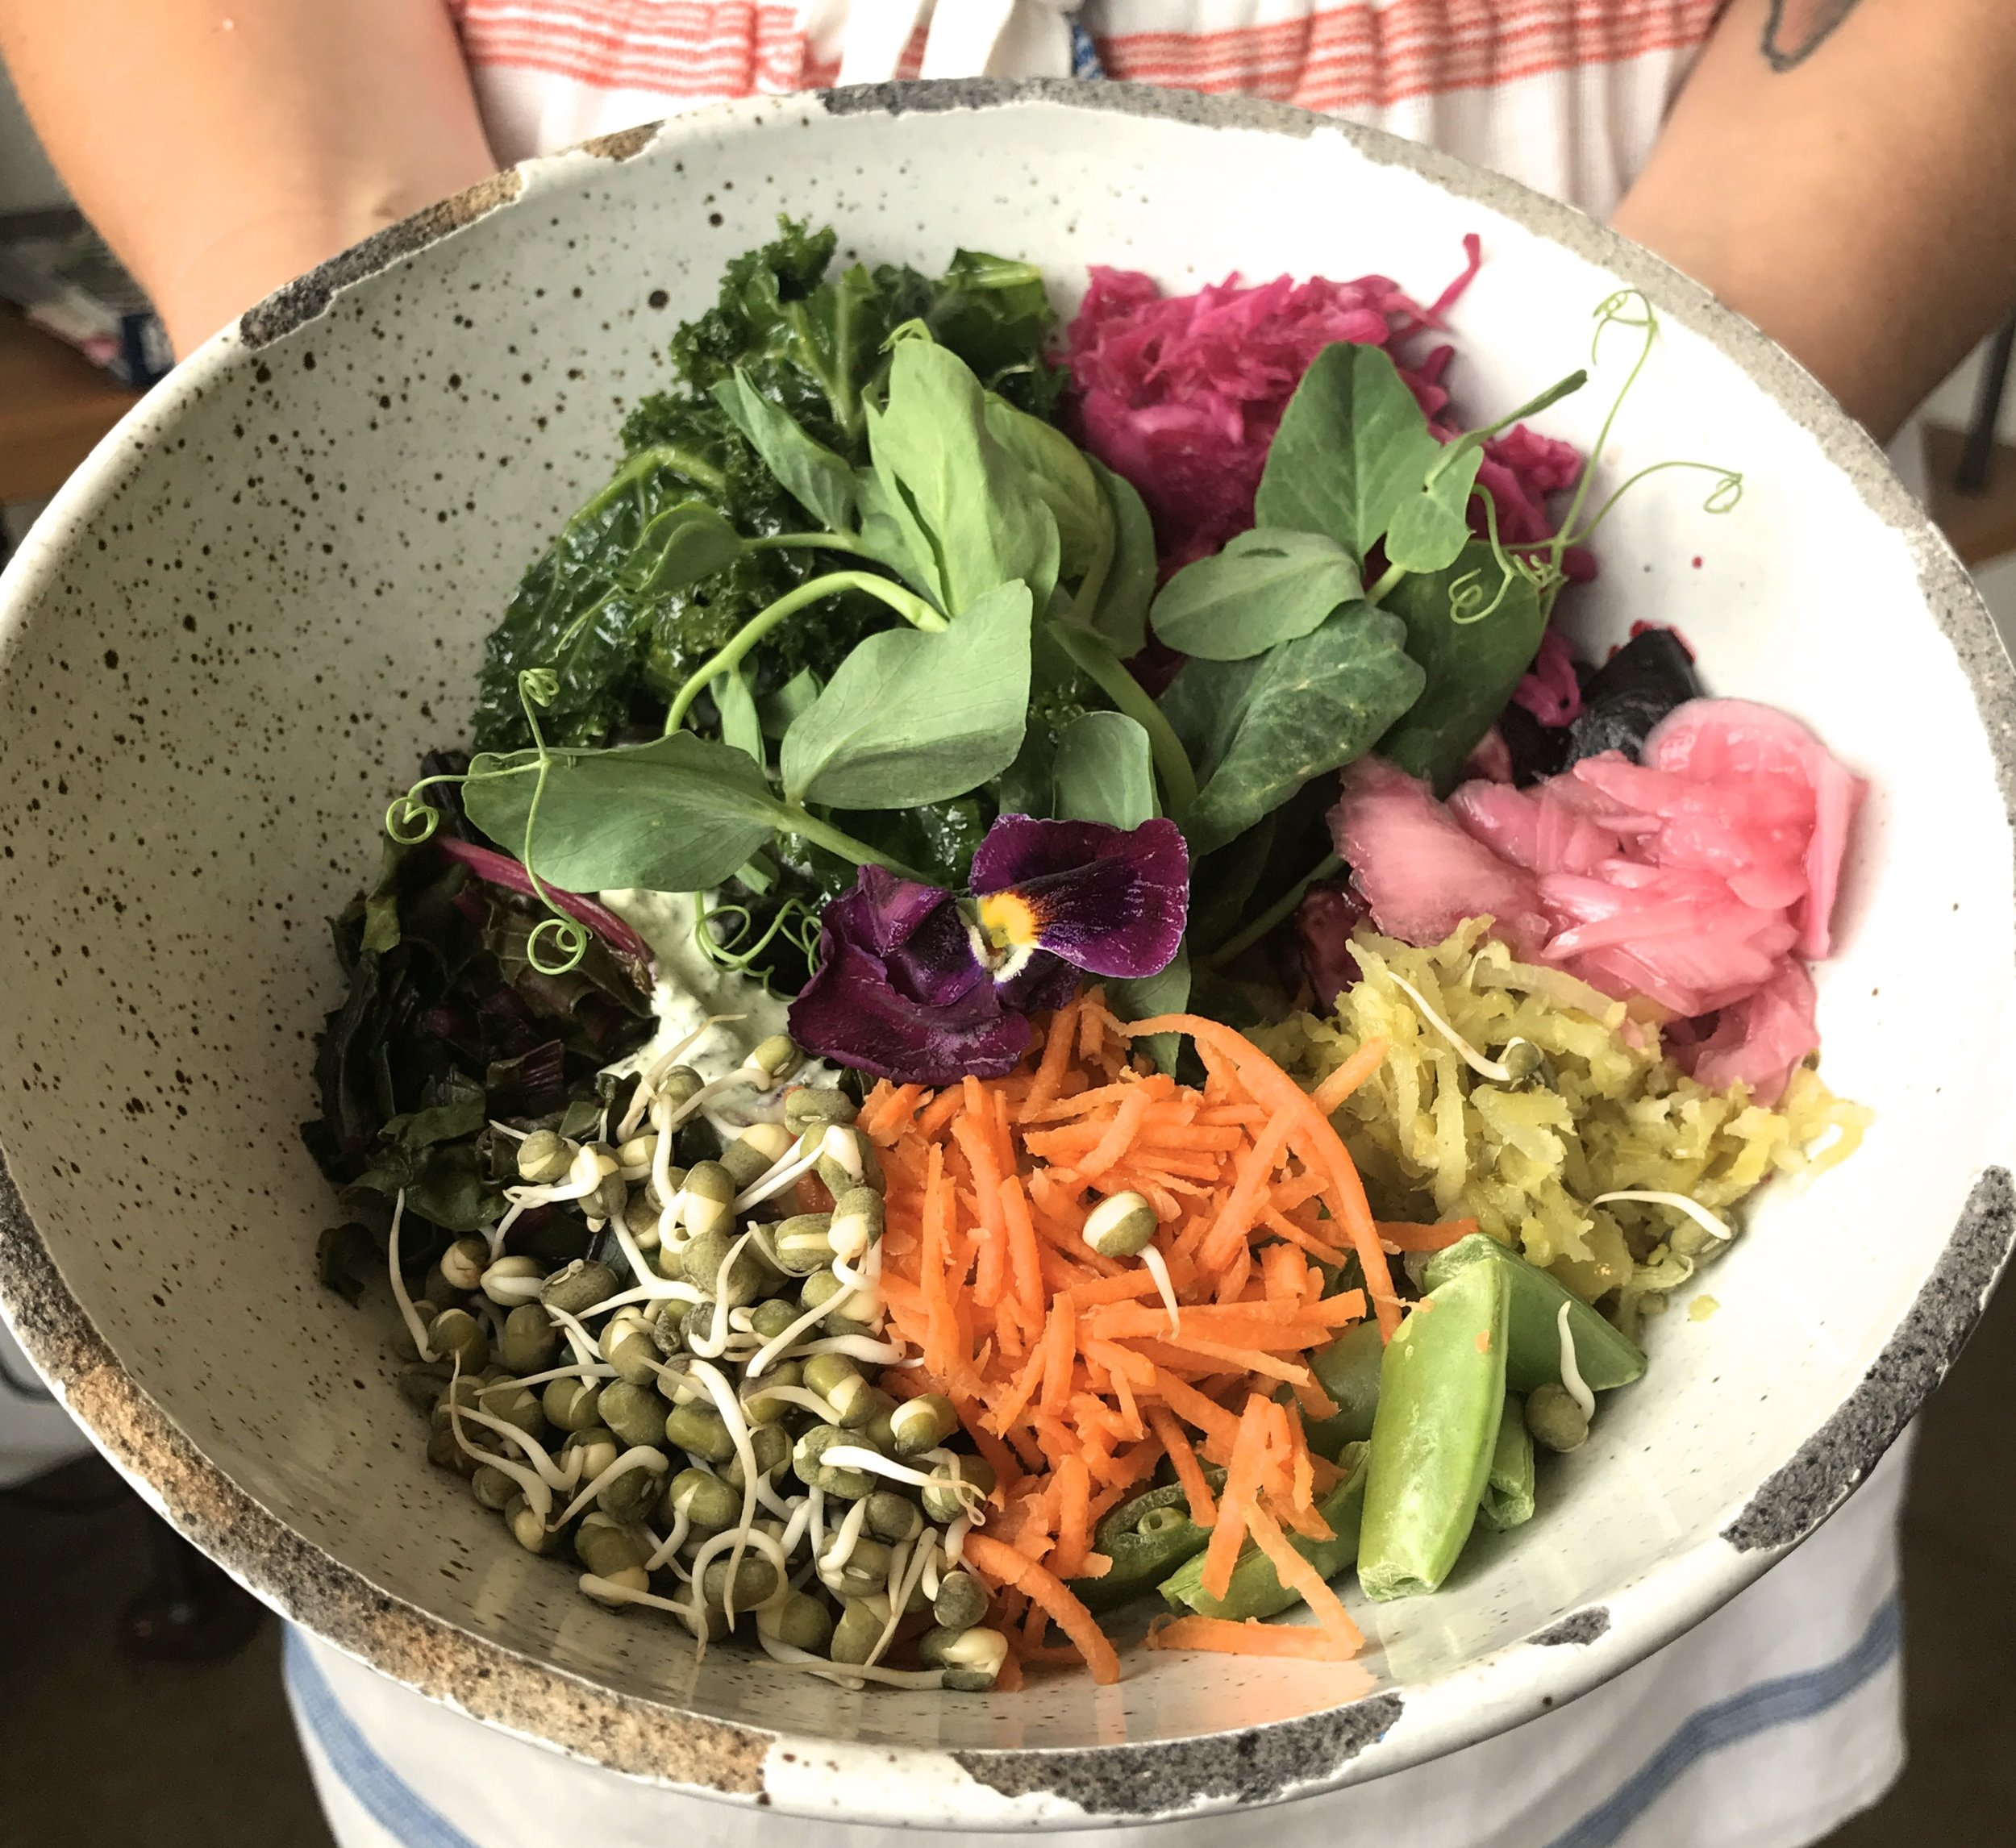 This beautiful and healthful bowl of food is from  Palette food and juice . hard not to appreciate and slow down when eating a meal like this!